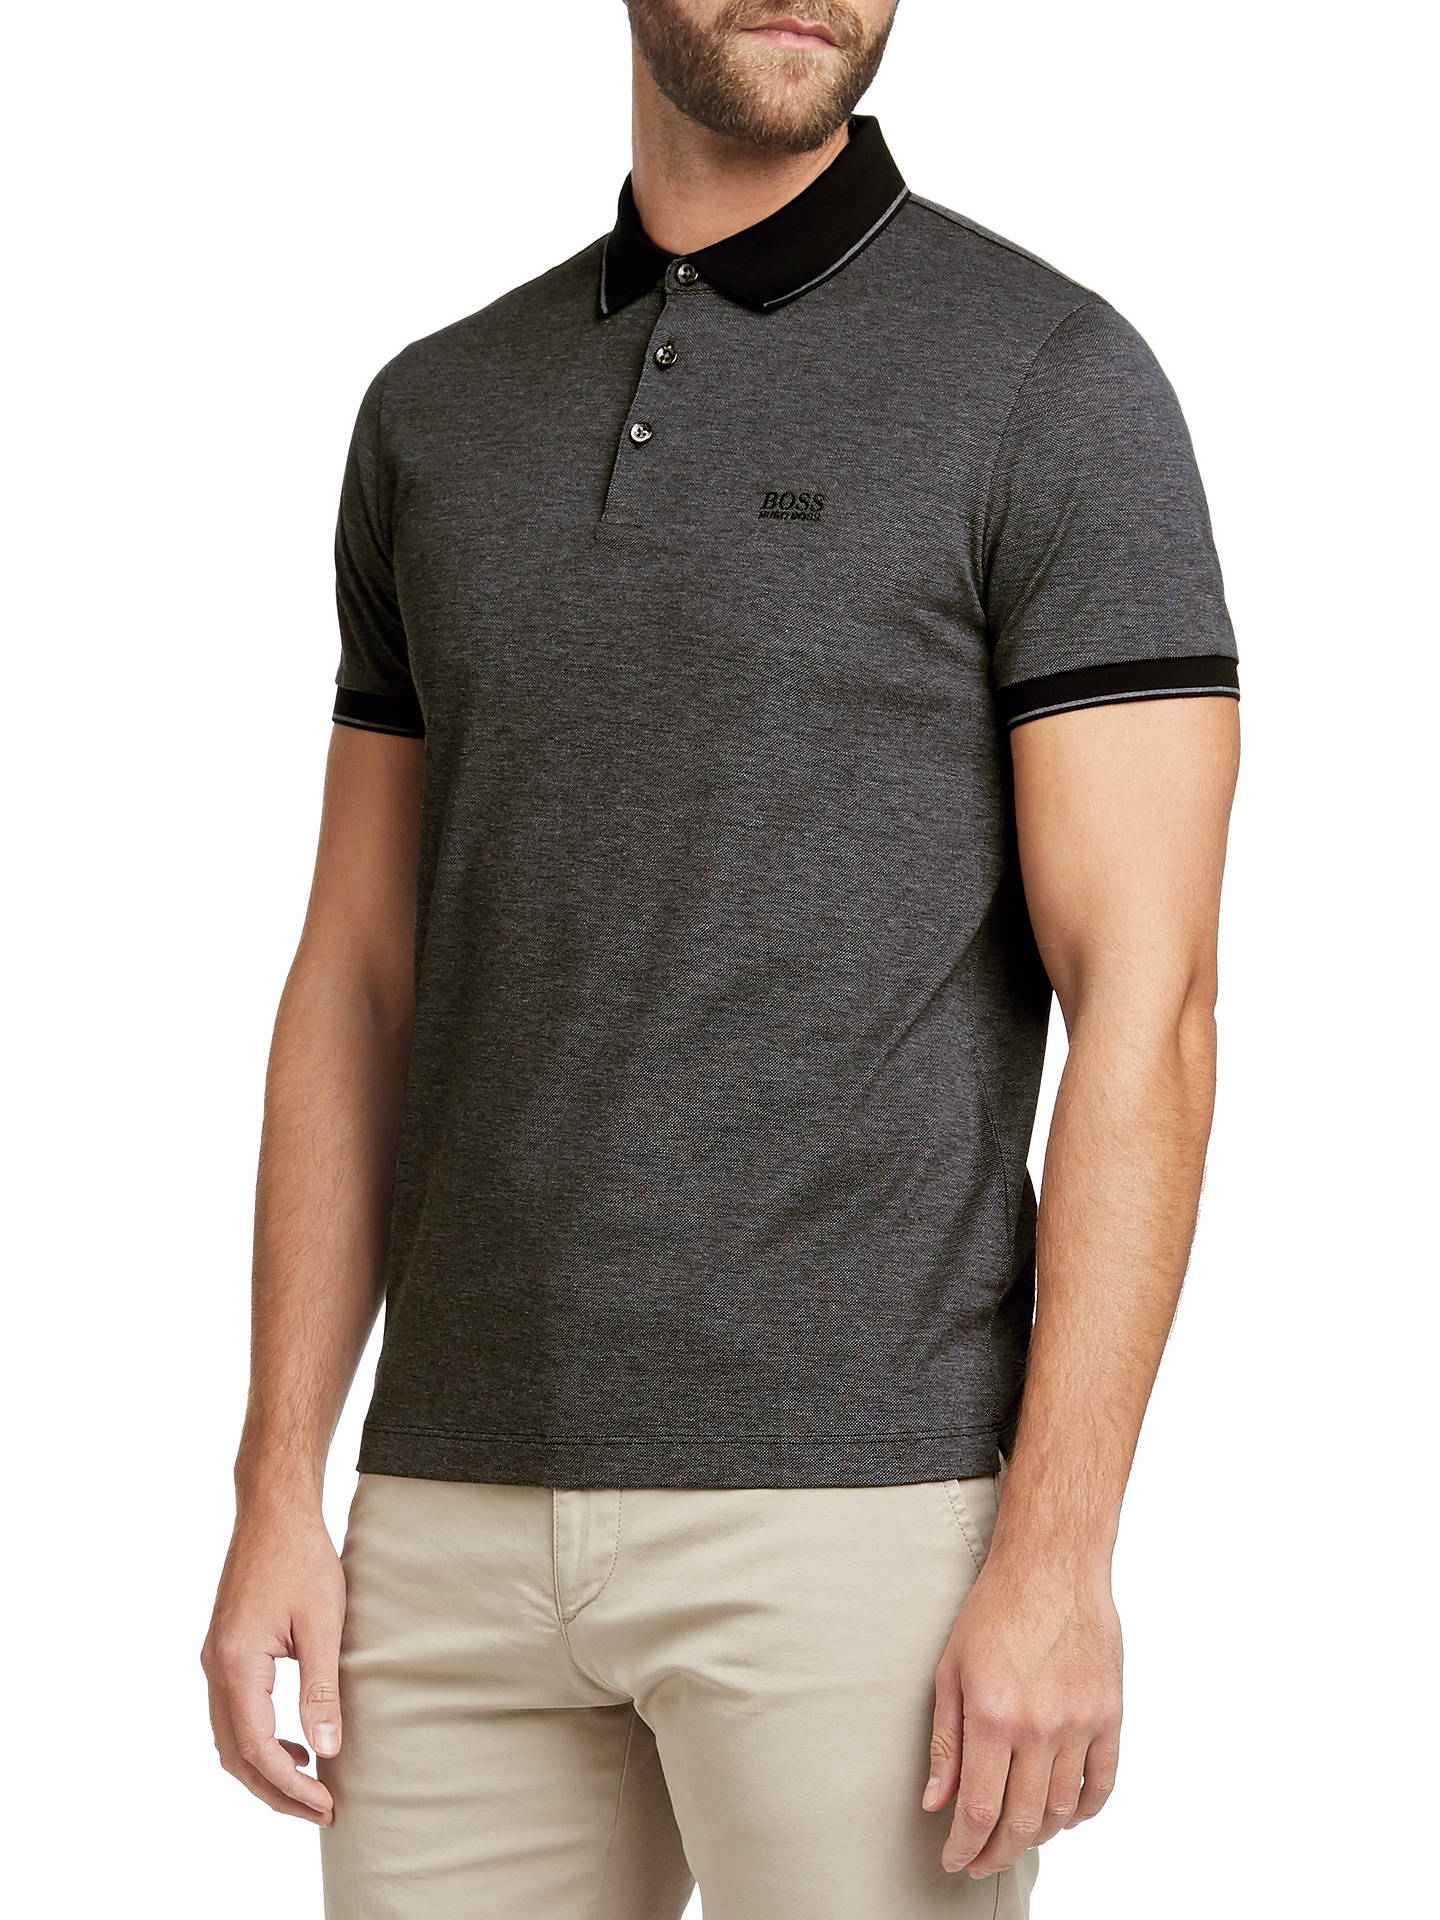 aed1d91a Buy BOSS Prout Short Sleeve Polo Shirt, Black, S Online at johnlewis.com ...